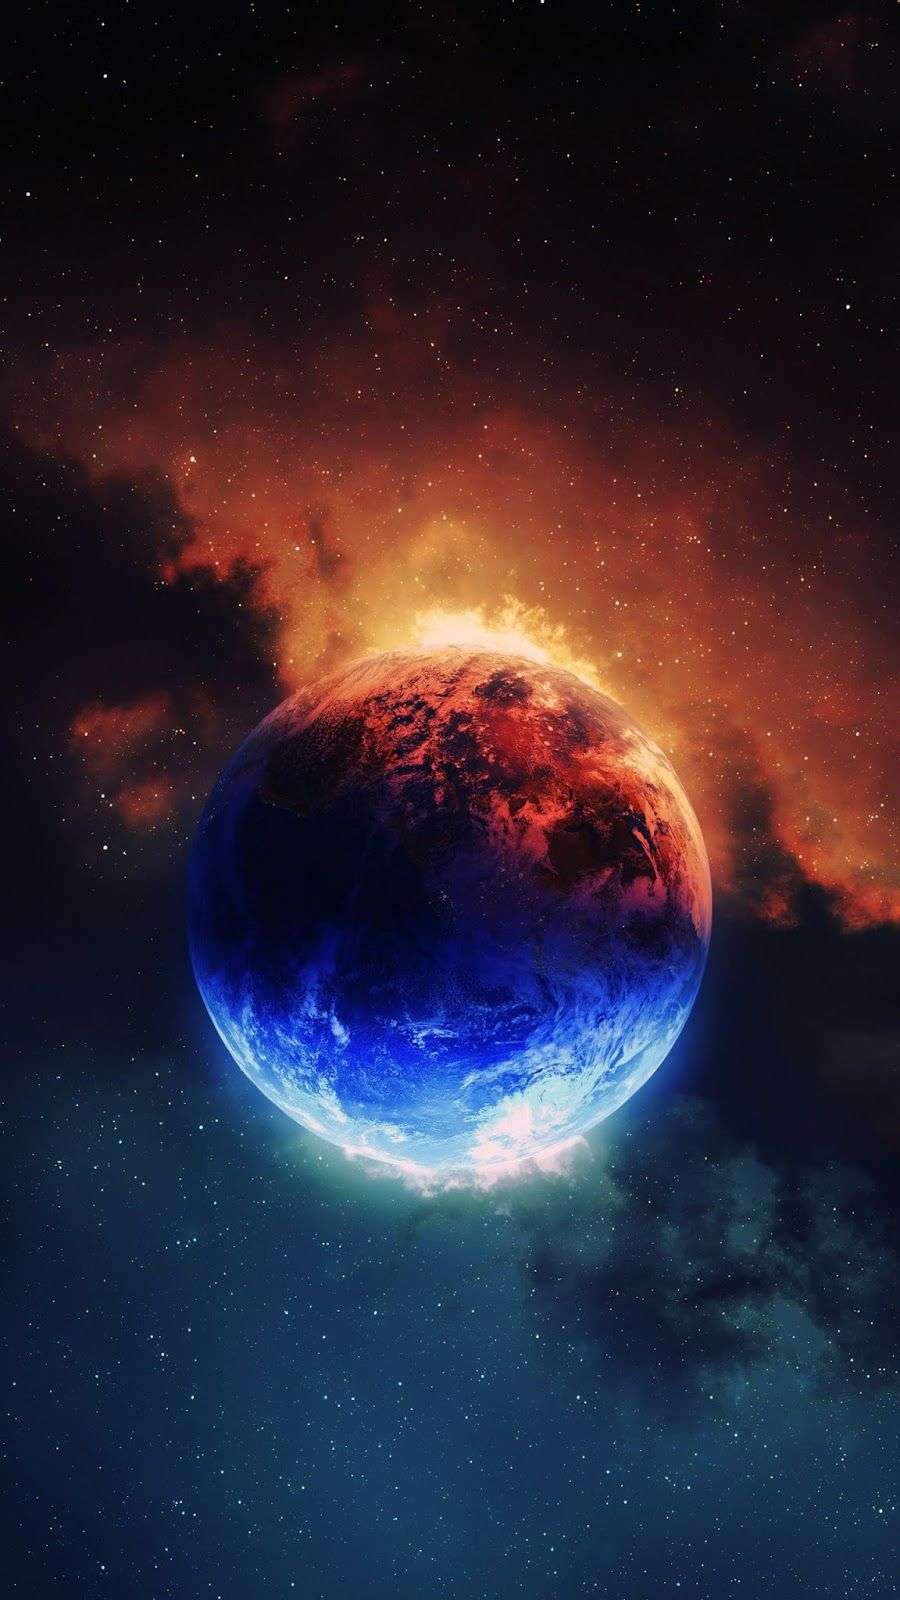 Red And Blue Planets Wallpaper Galaxy Wallpaper Space Art